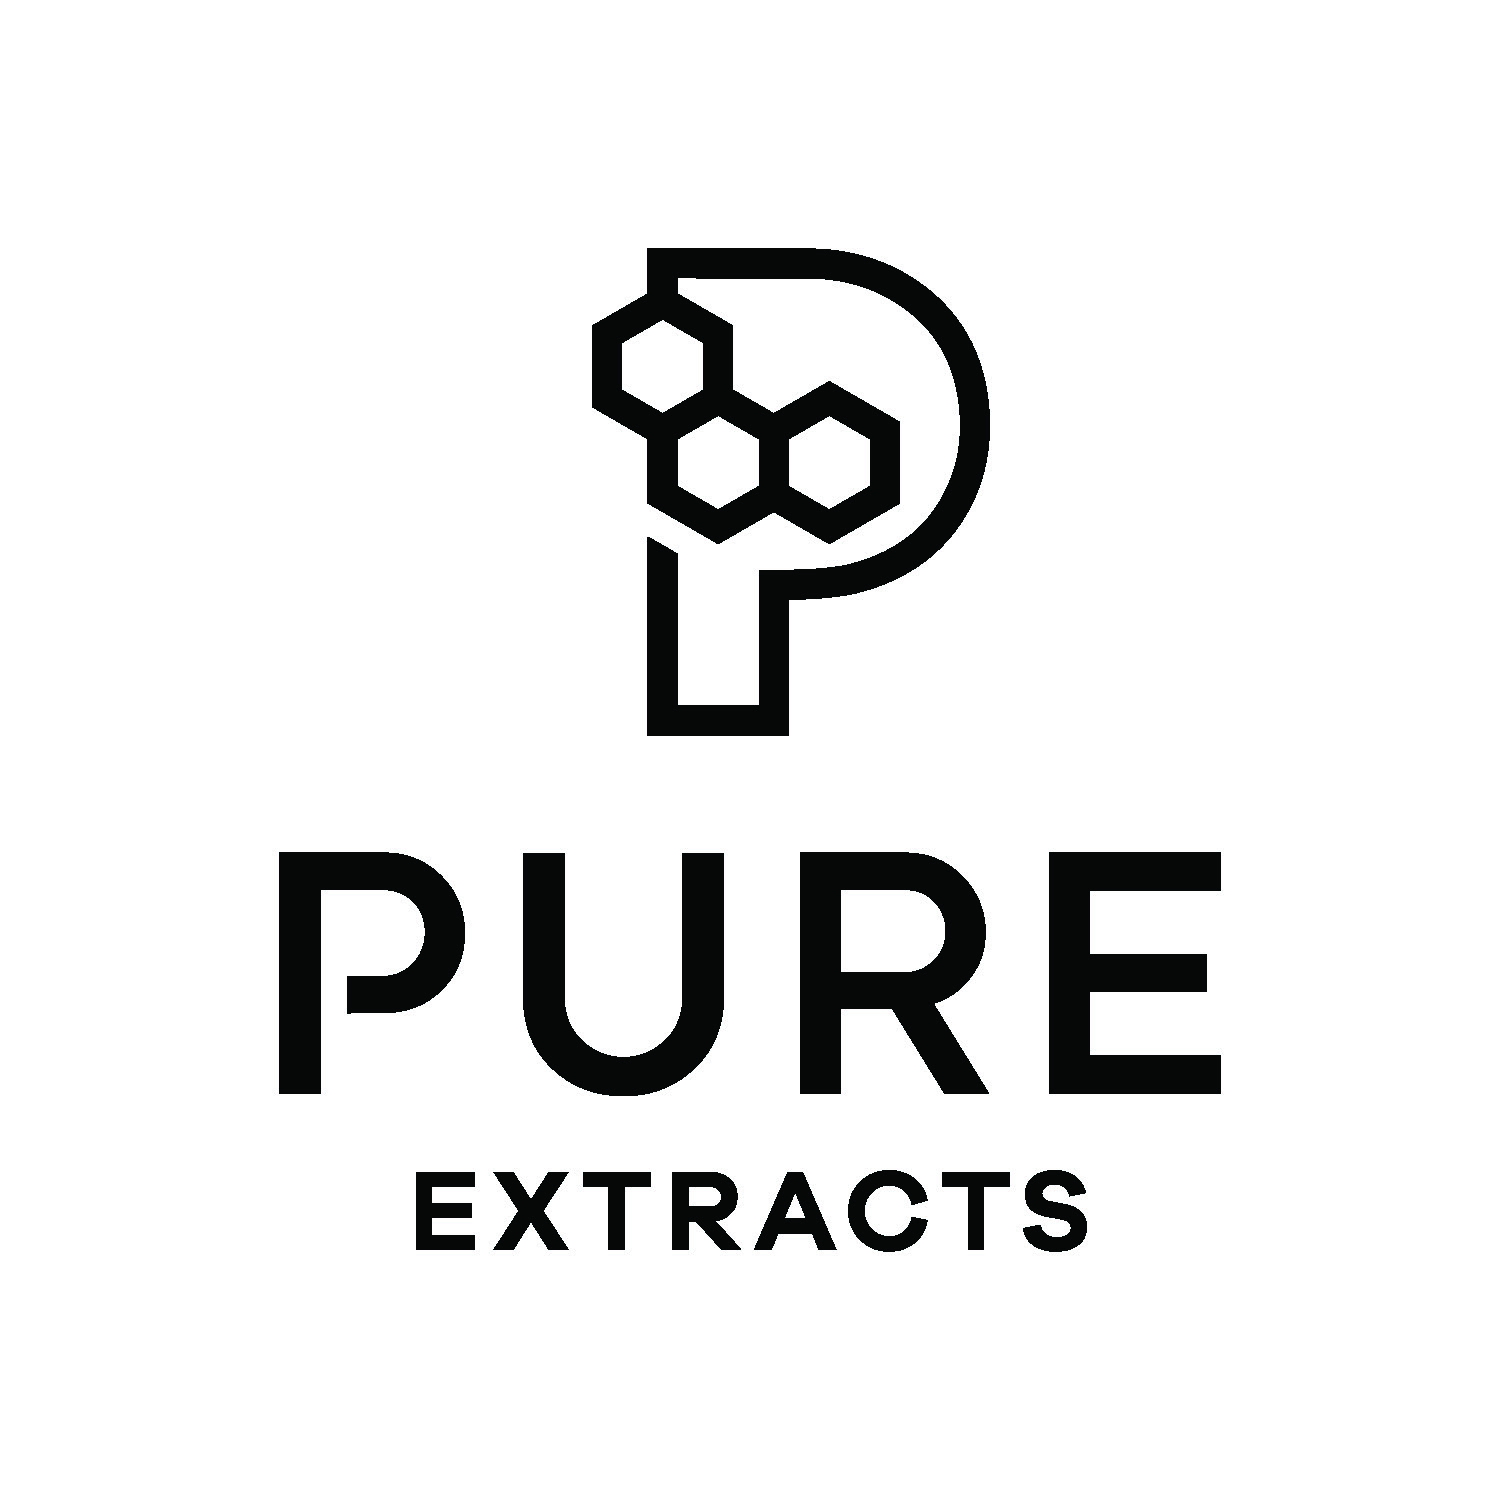 Pure Extracts Commences Build-Out of Facility in Preparation for Mushroom Extraction and Dealer's Licence